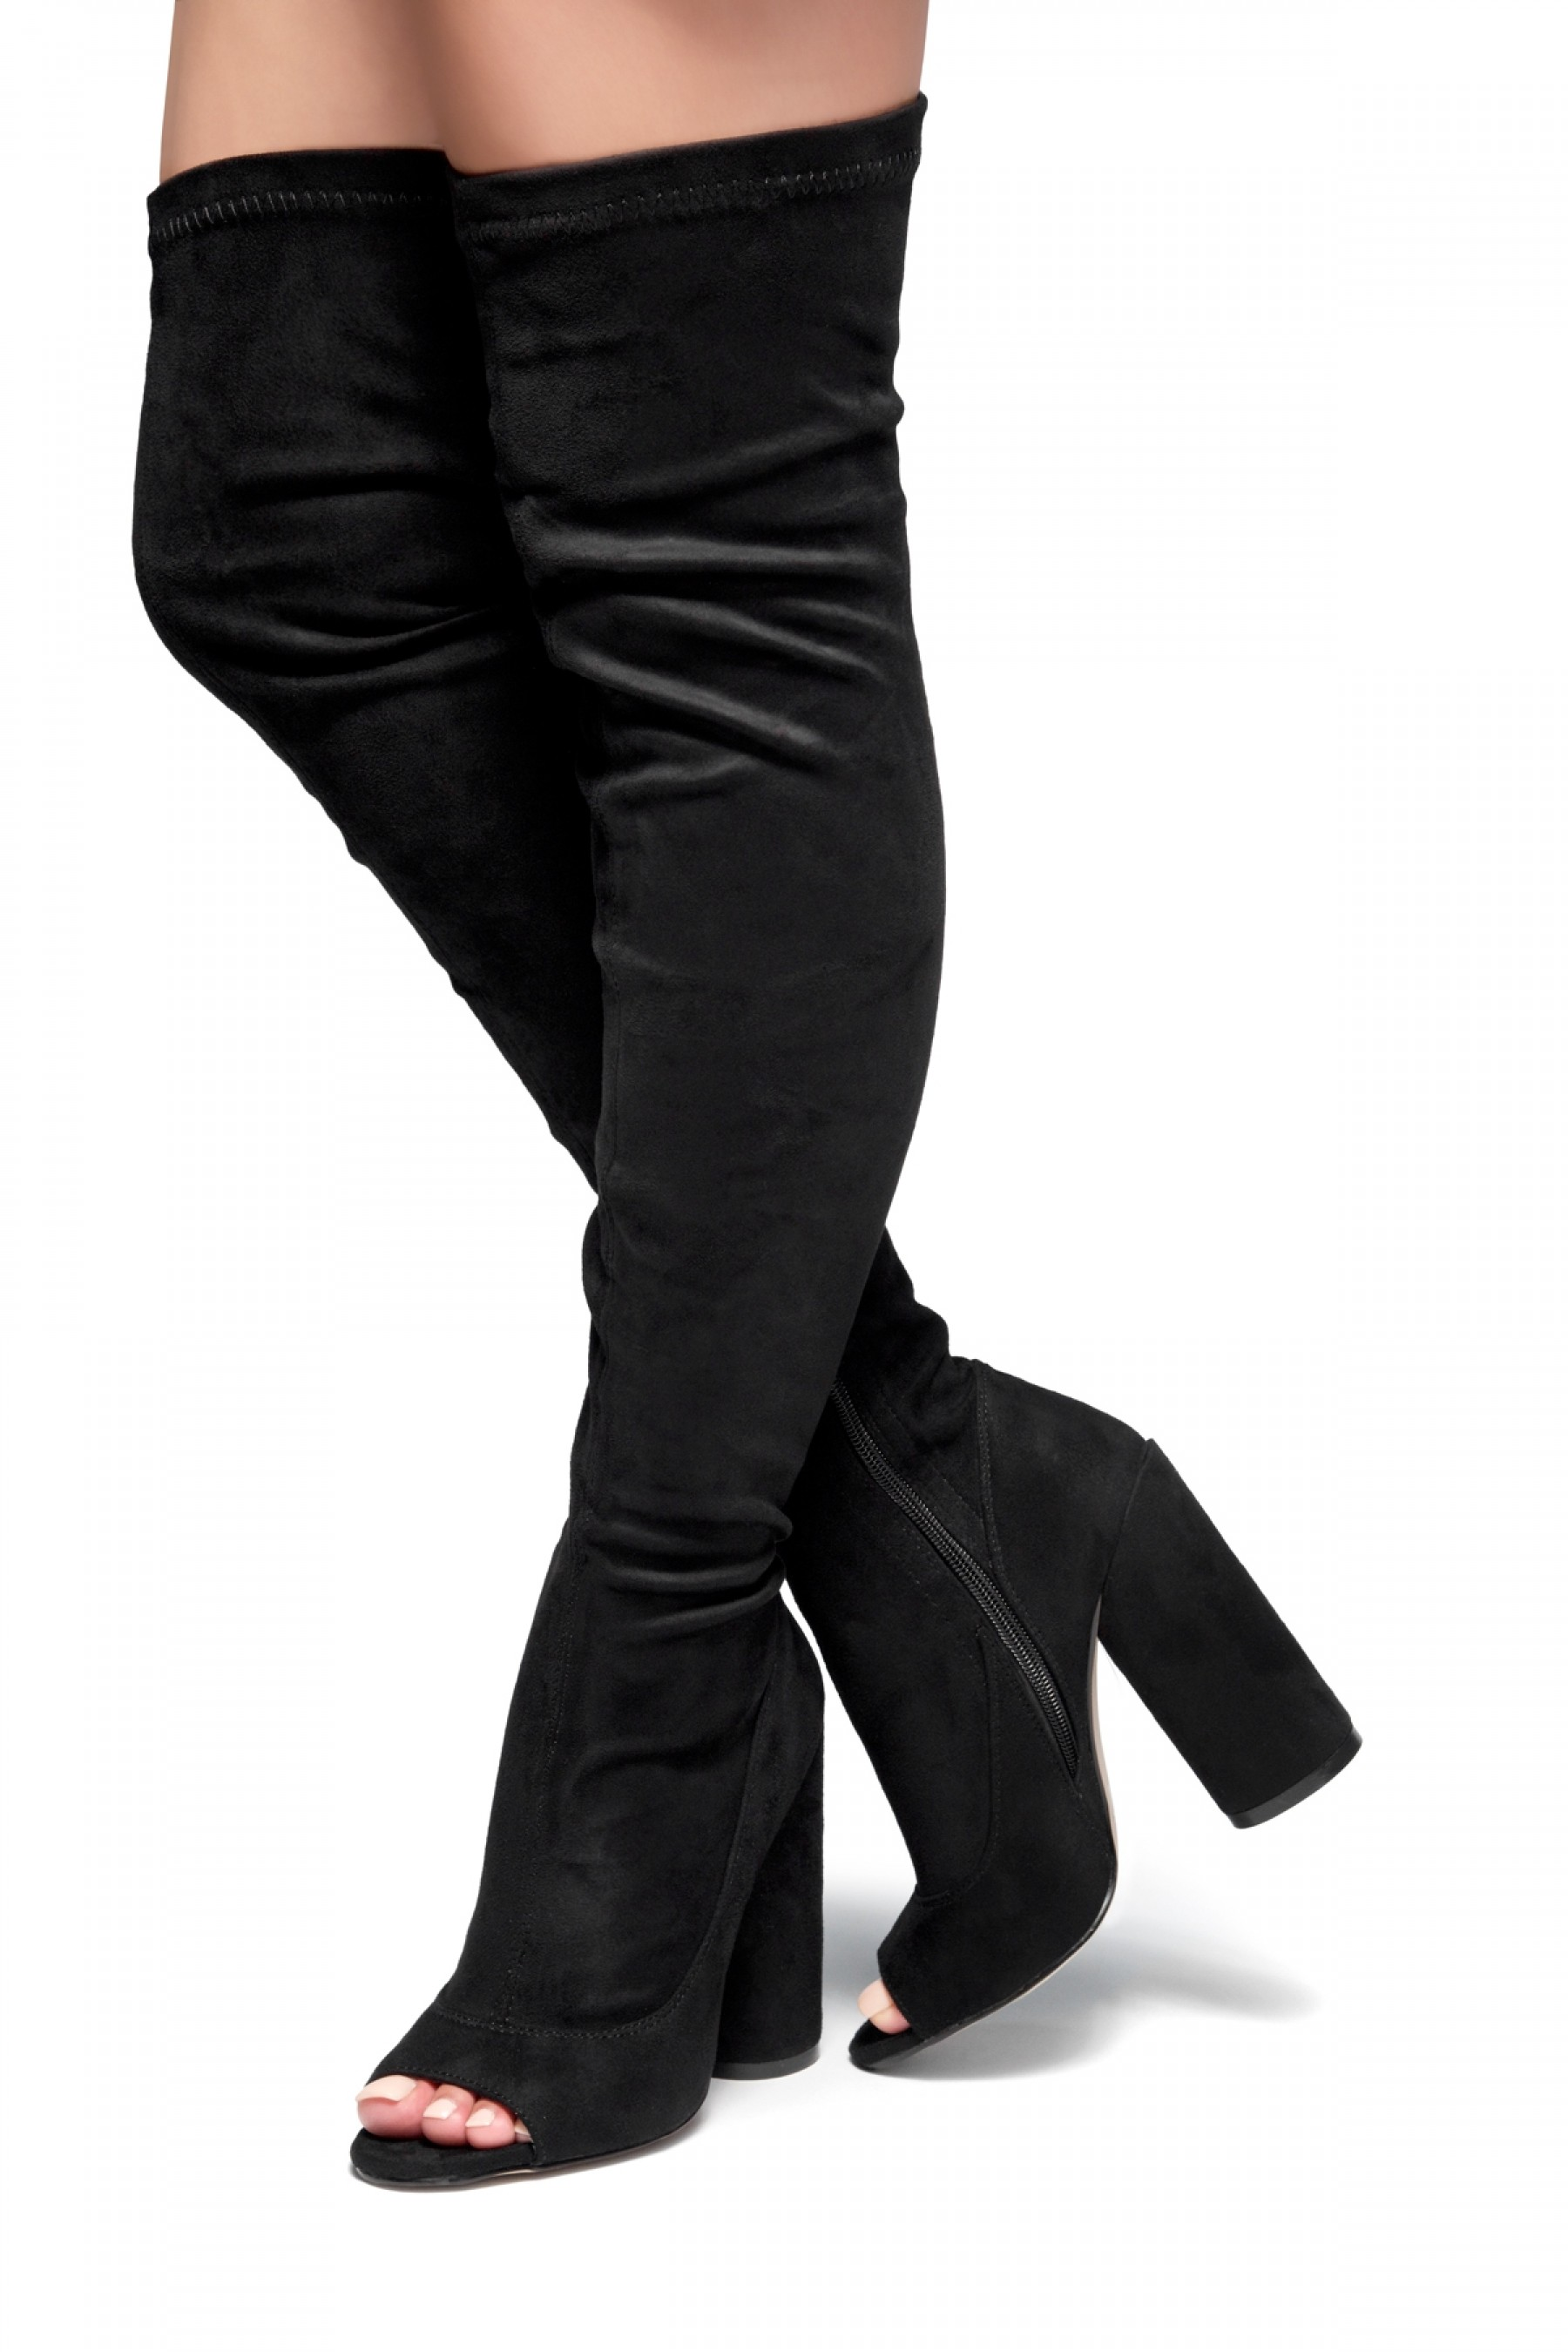 HerStyle Malorey Sock fit peep toe boots, thigh high boots, and round heel (Black)